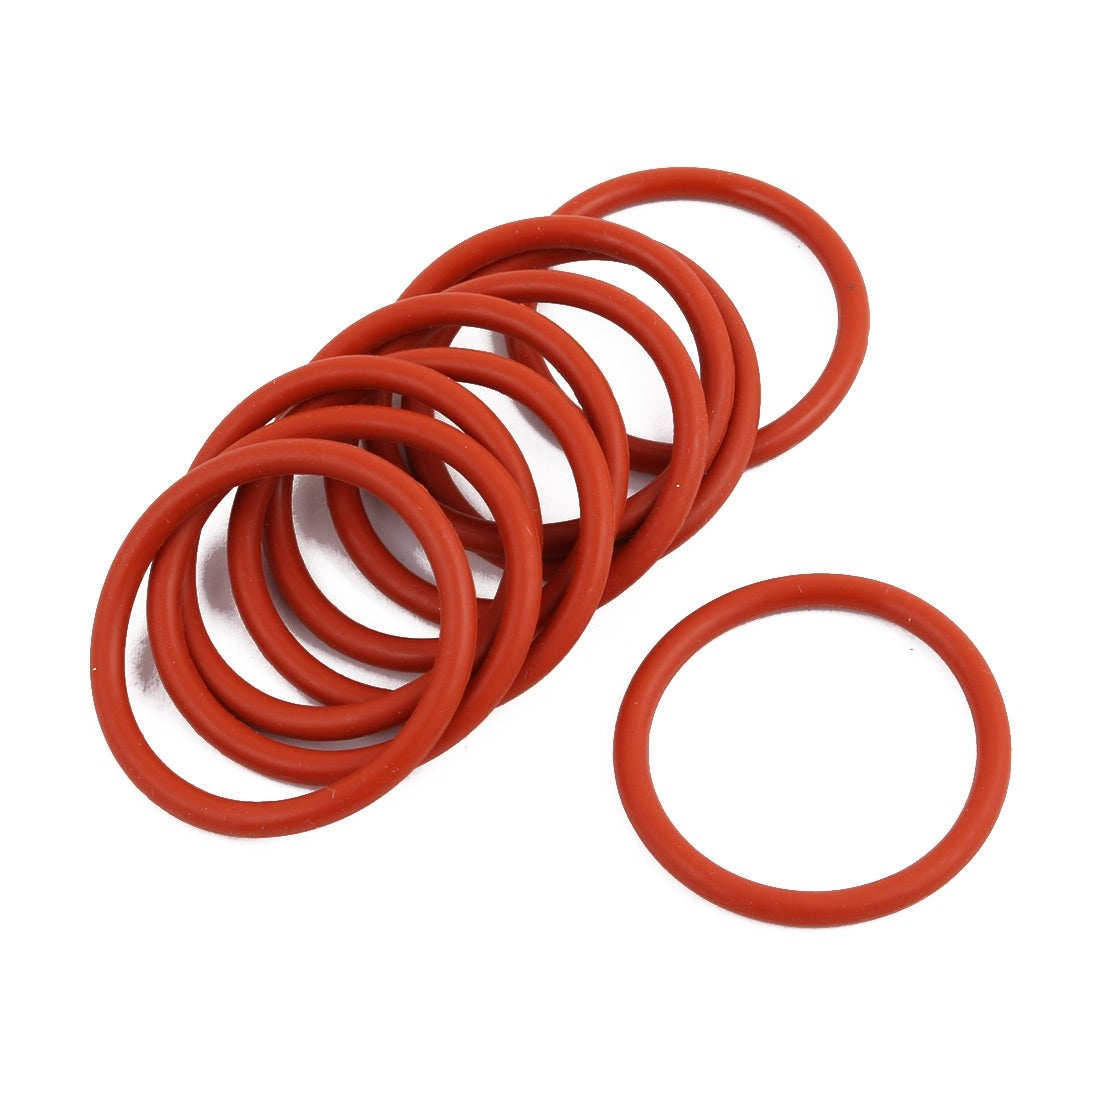 10pcs 40mmx3.5mm O-Ring Pneumatic Air Rubber Hydraulic Tool Red